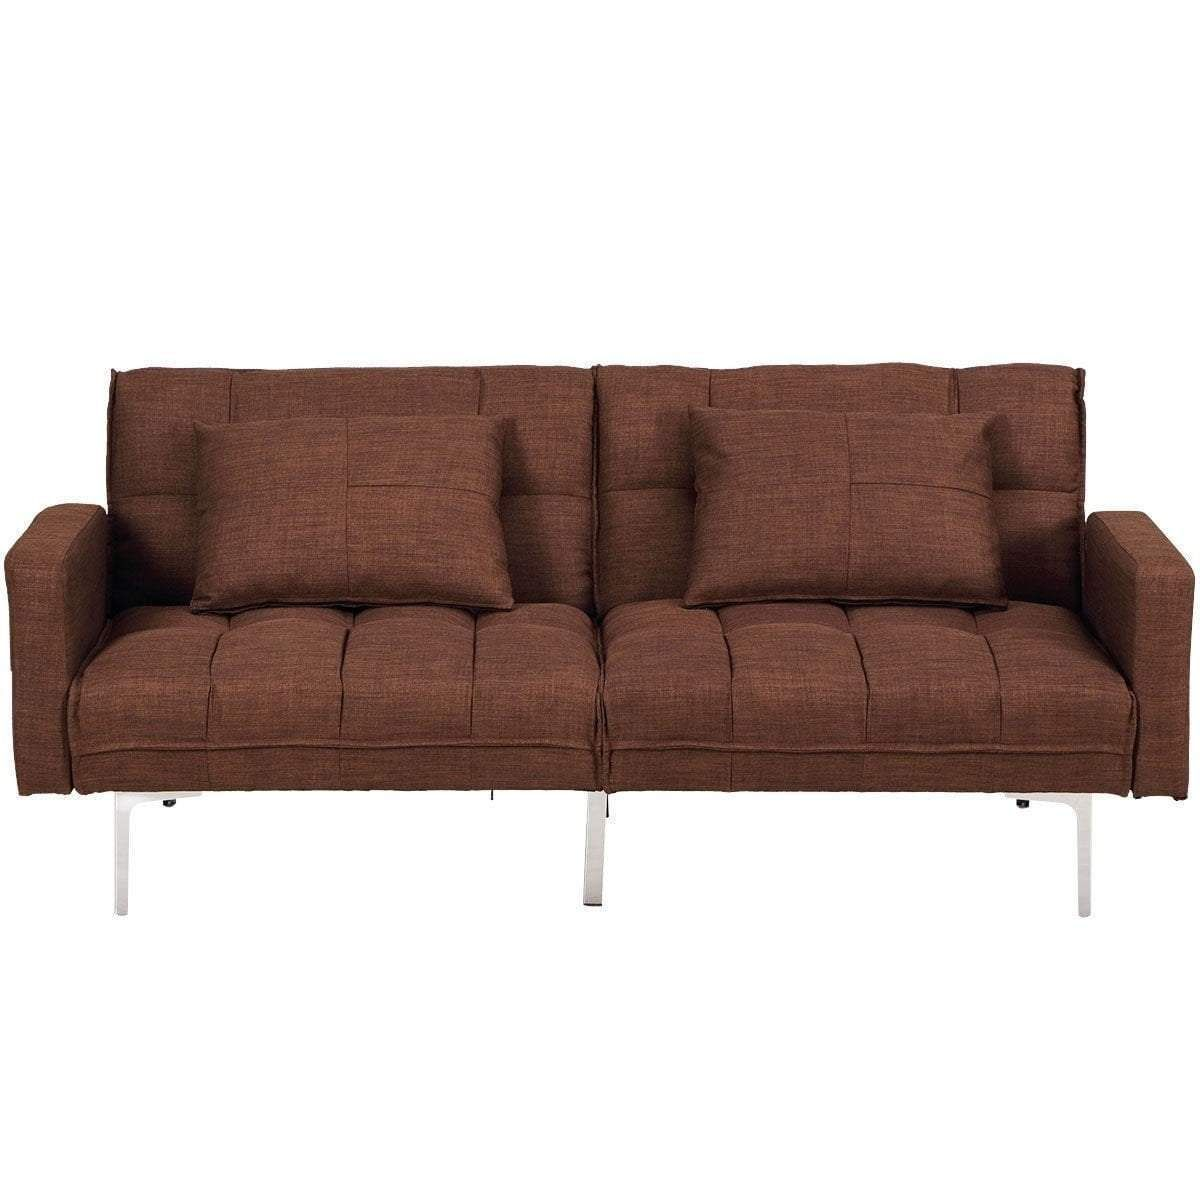 Convertible Sleeper Sofa Bed With Adjule Armrests Backrests Brown